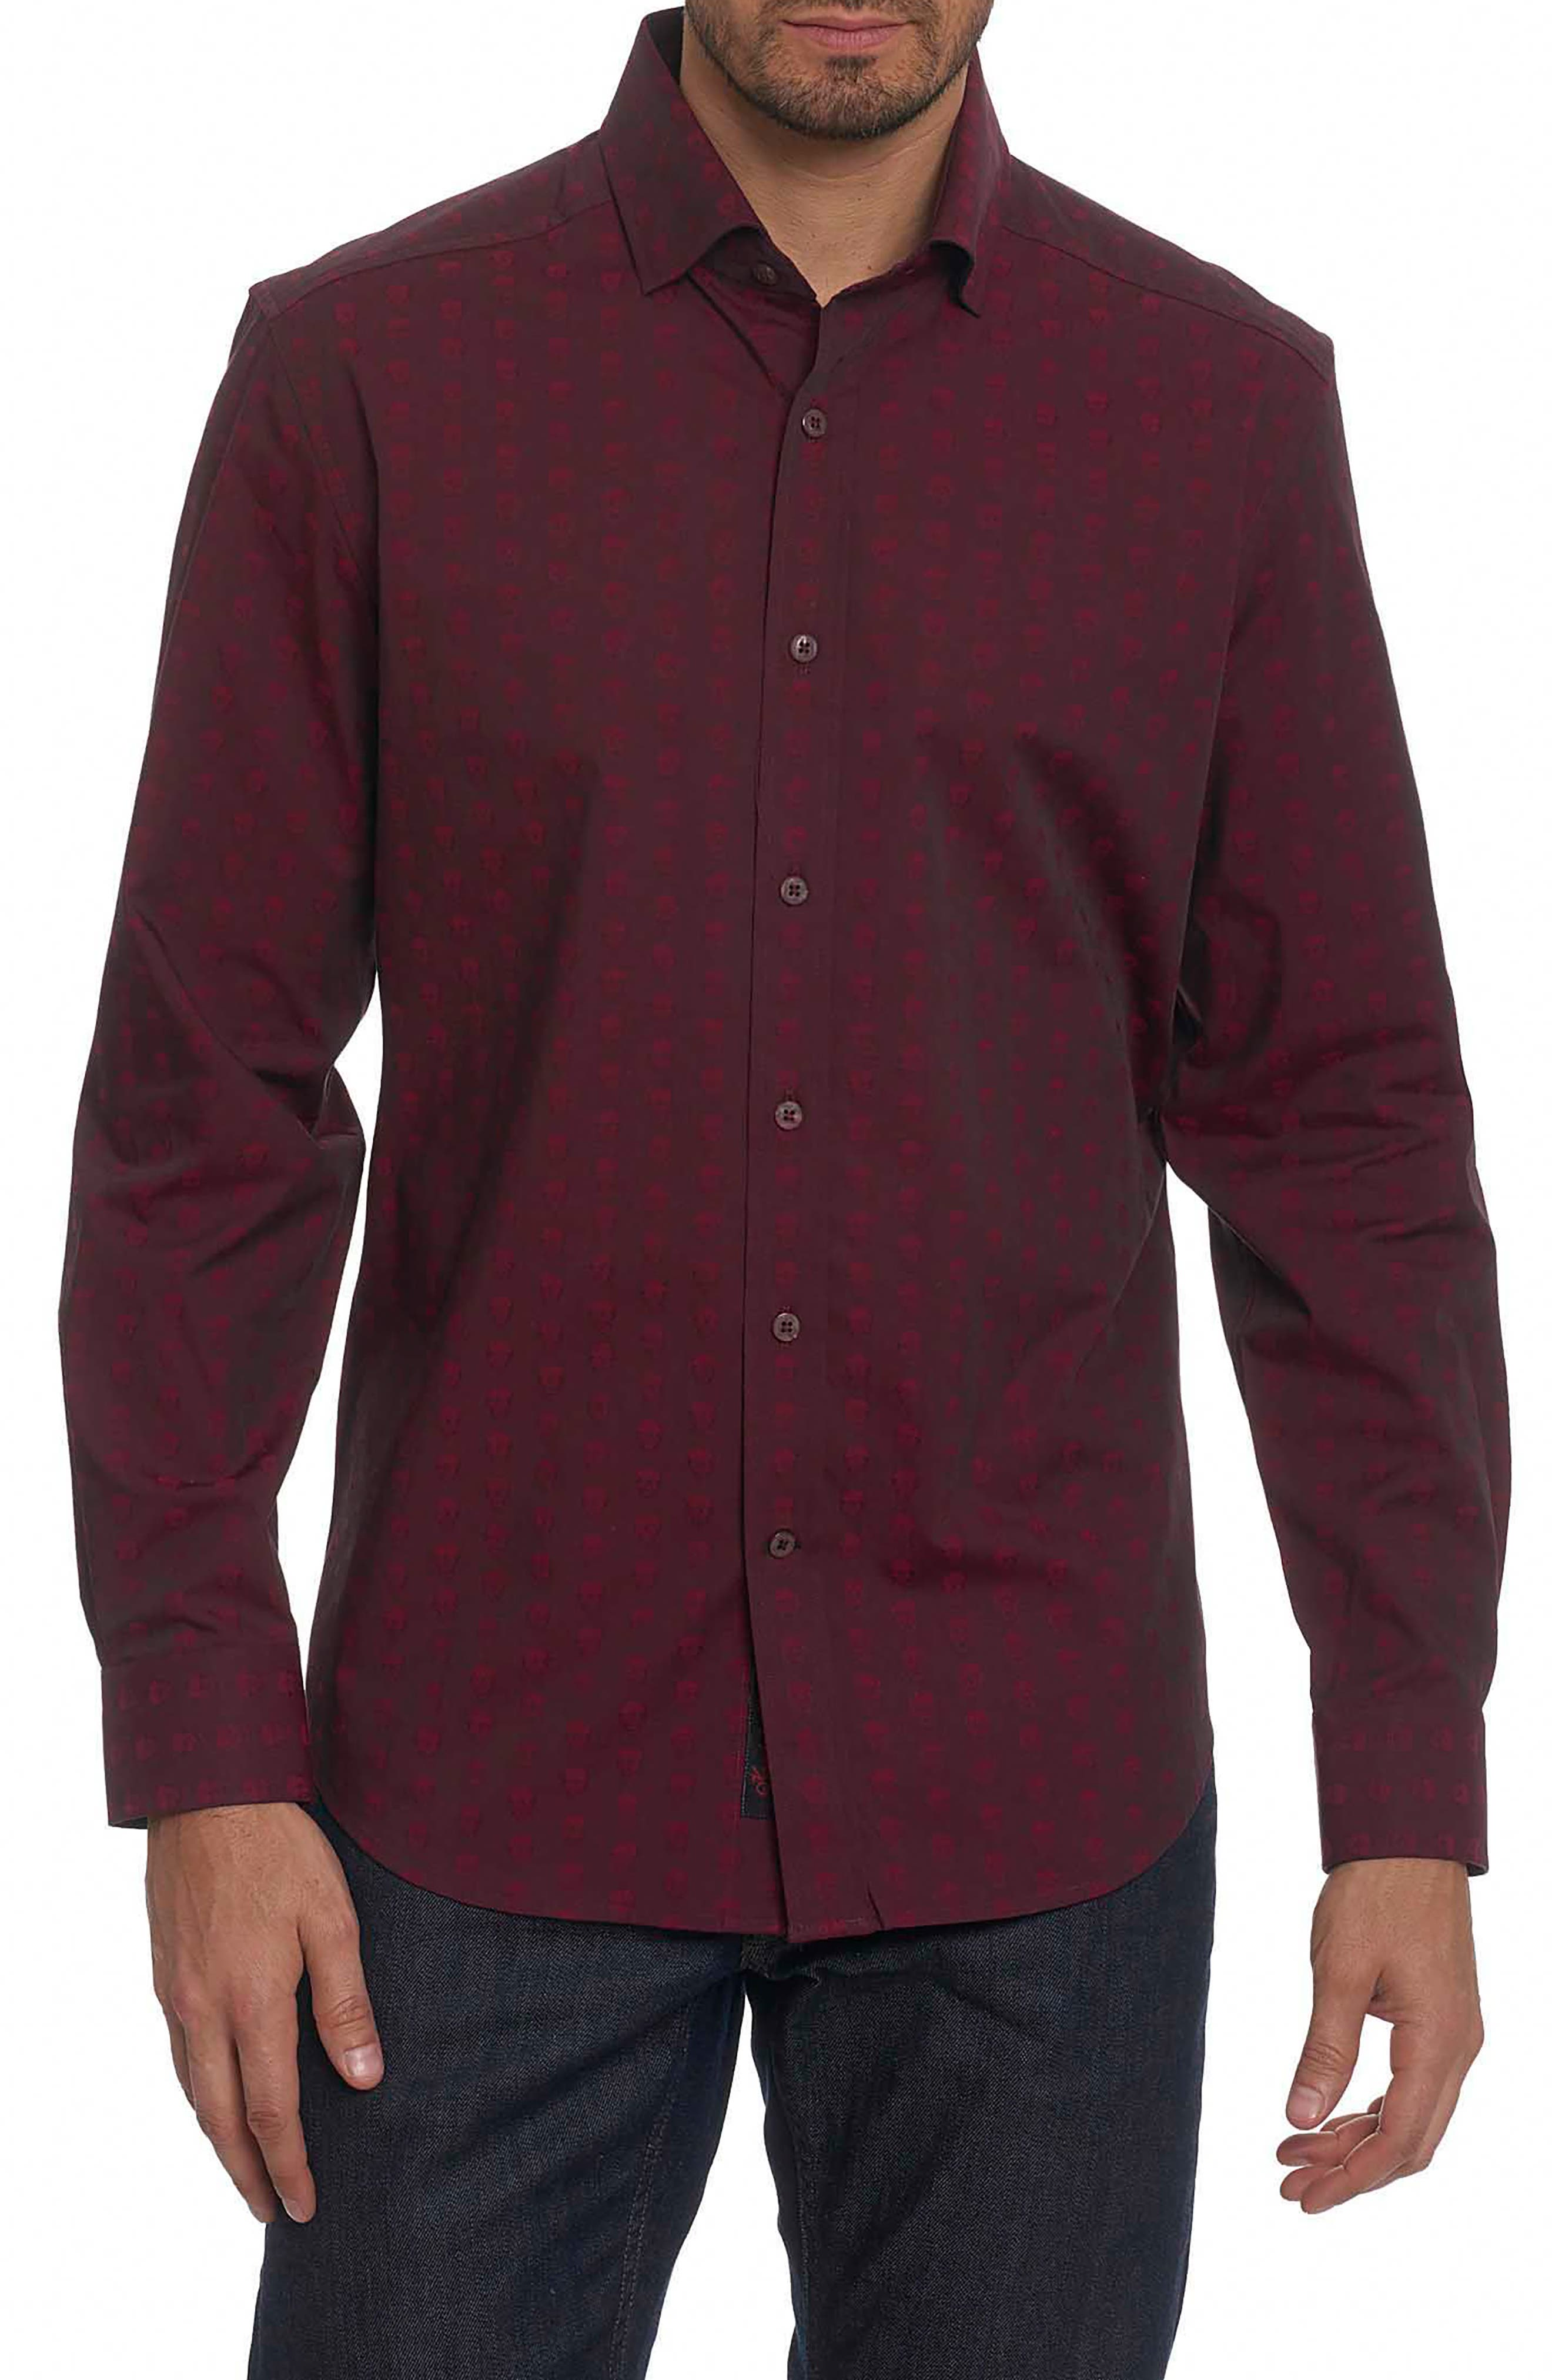 Deven Tailored Fit Sport Shirt,                         Main,                         color, 600